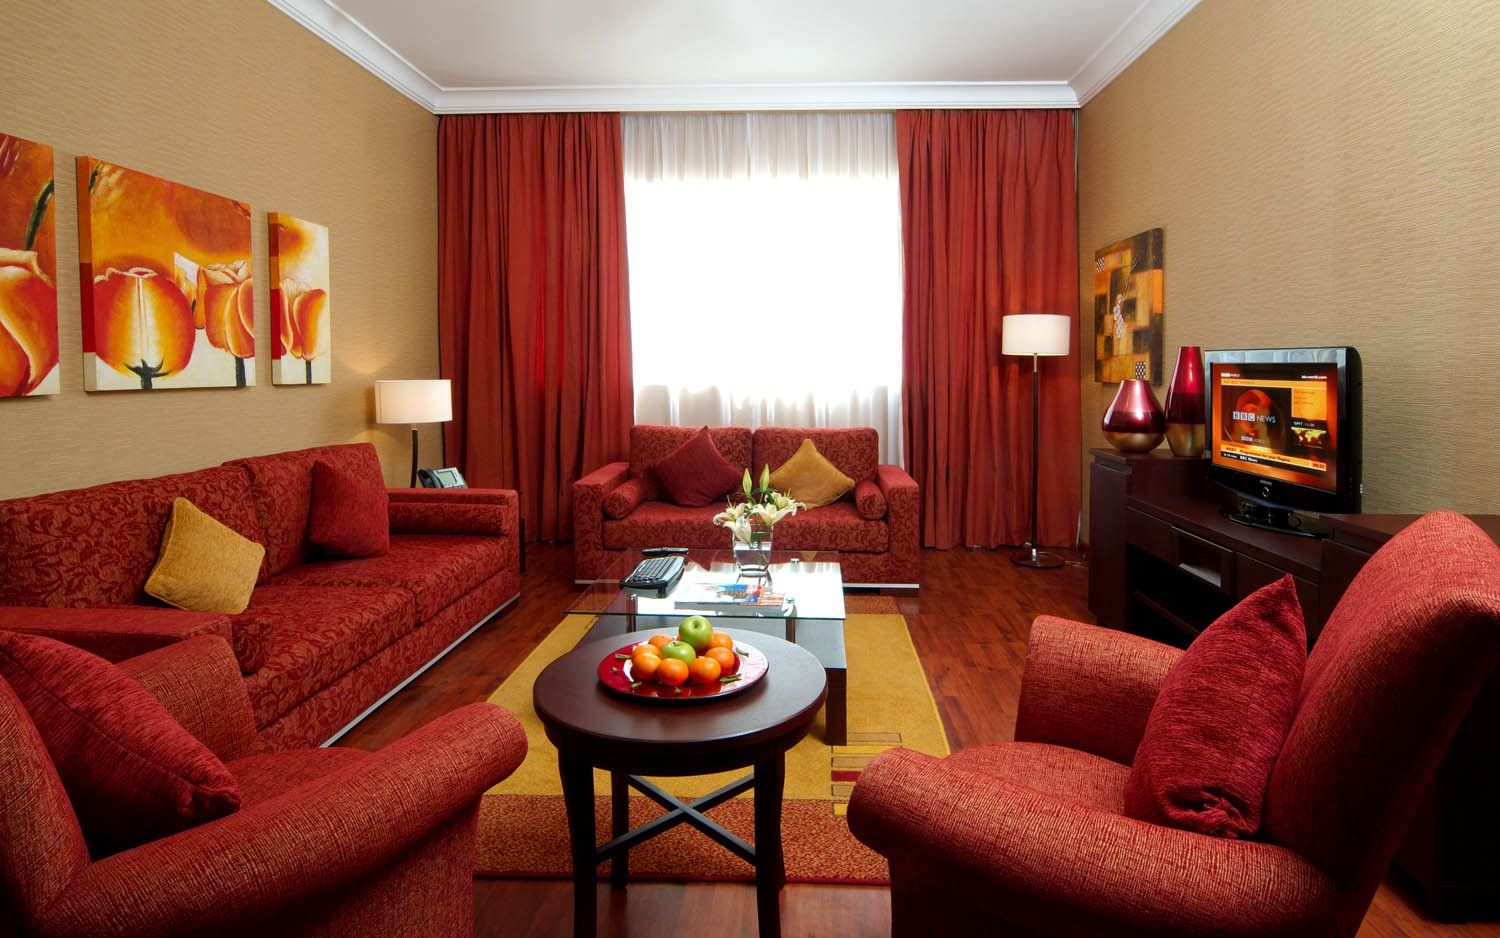 Red Minimalist Living Room Ideas Inspiration To Make The Most Of Your Space Living Room Red Red Furniture Living Room Red Living Room Decor #red #wall #living #room #ideas